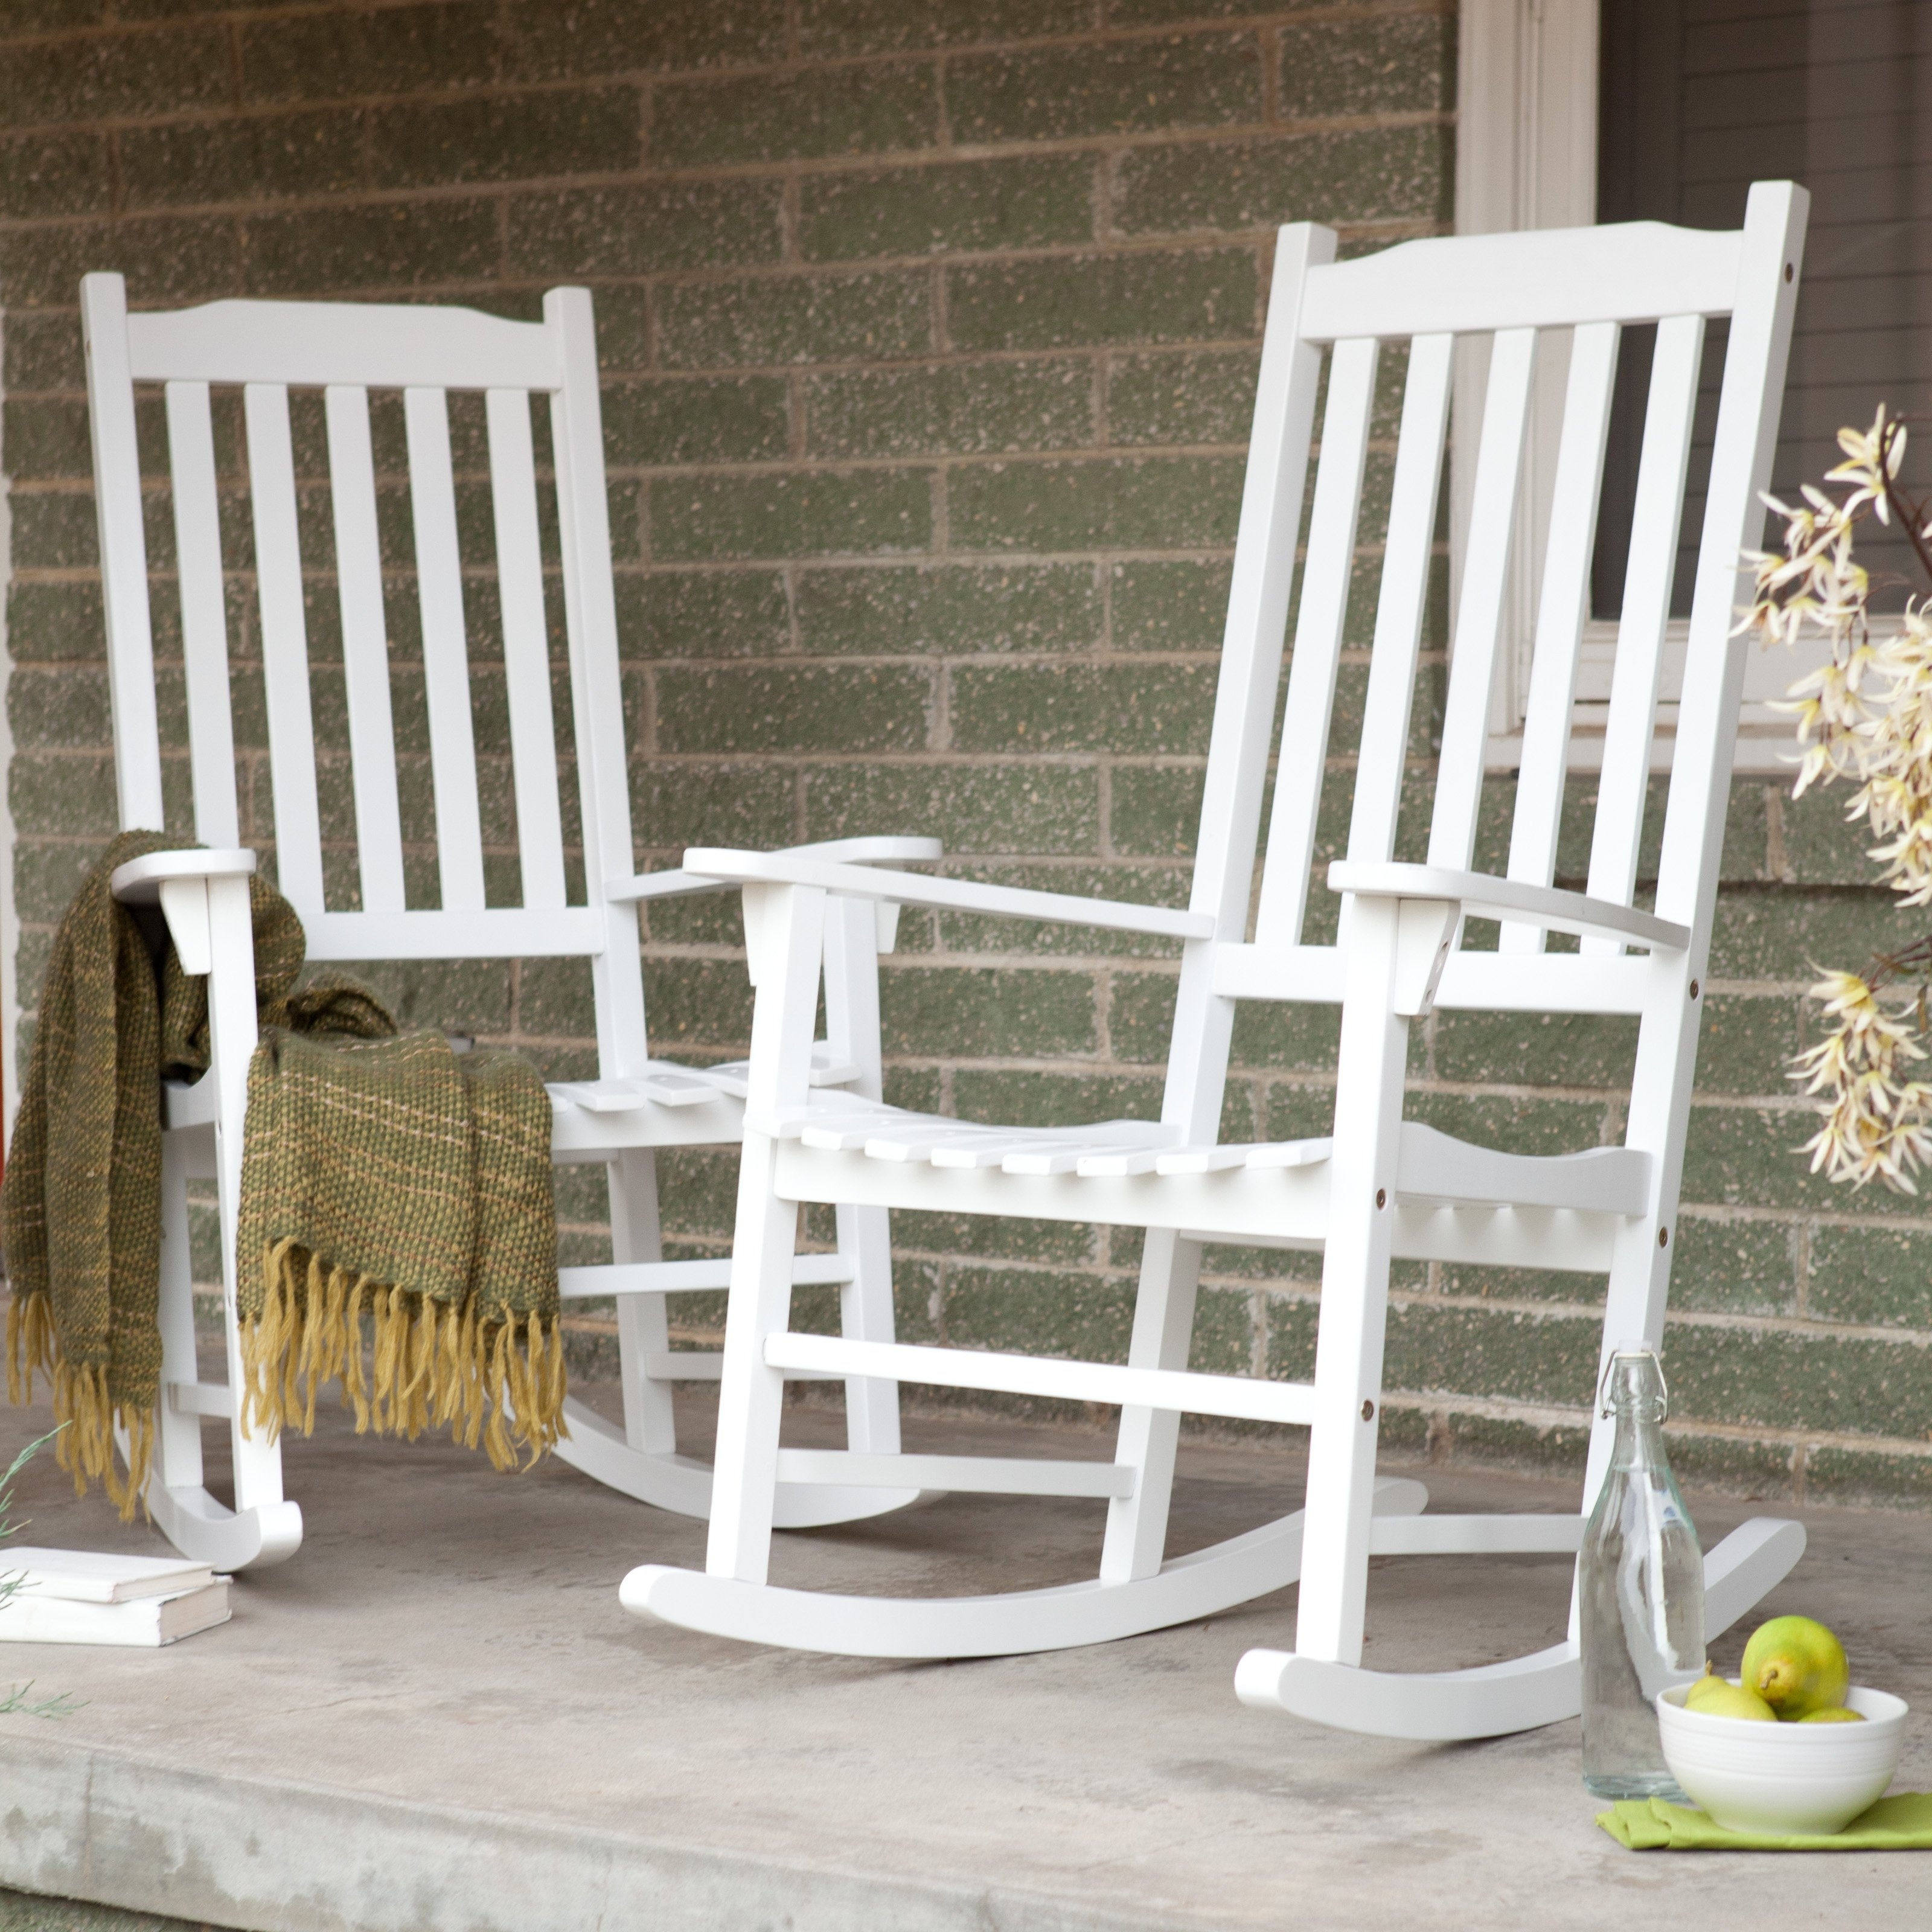 Coral Coast Indoor/outdoor Mission Slat Rocking Chairs – White – Set Inside Outside Rocking Chair Sets (View 4 of 15)